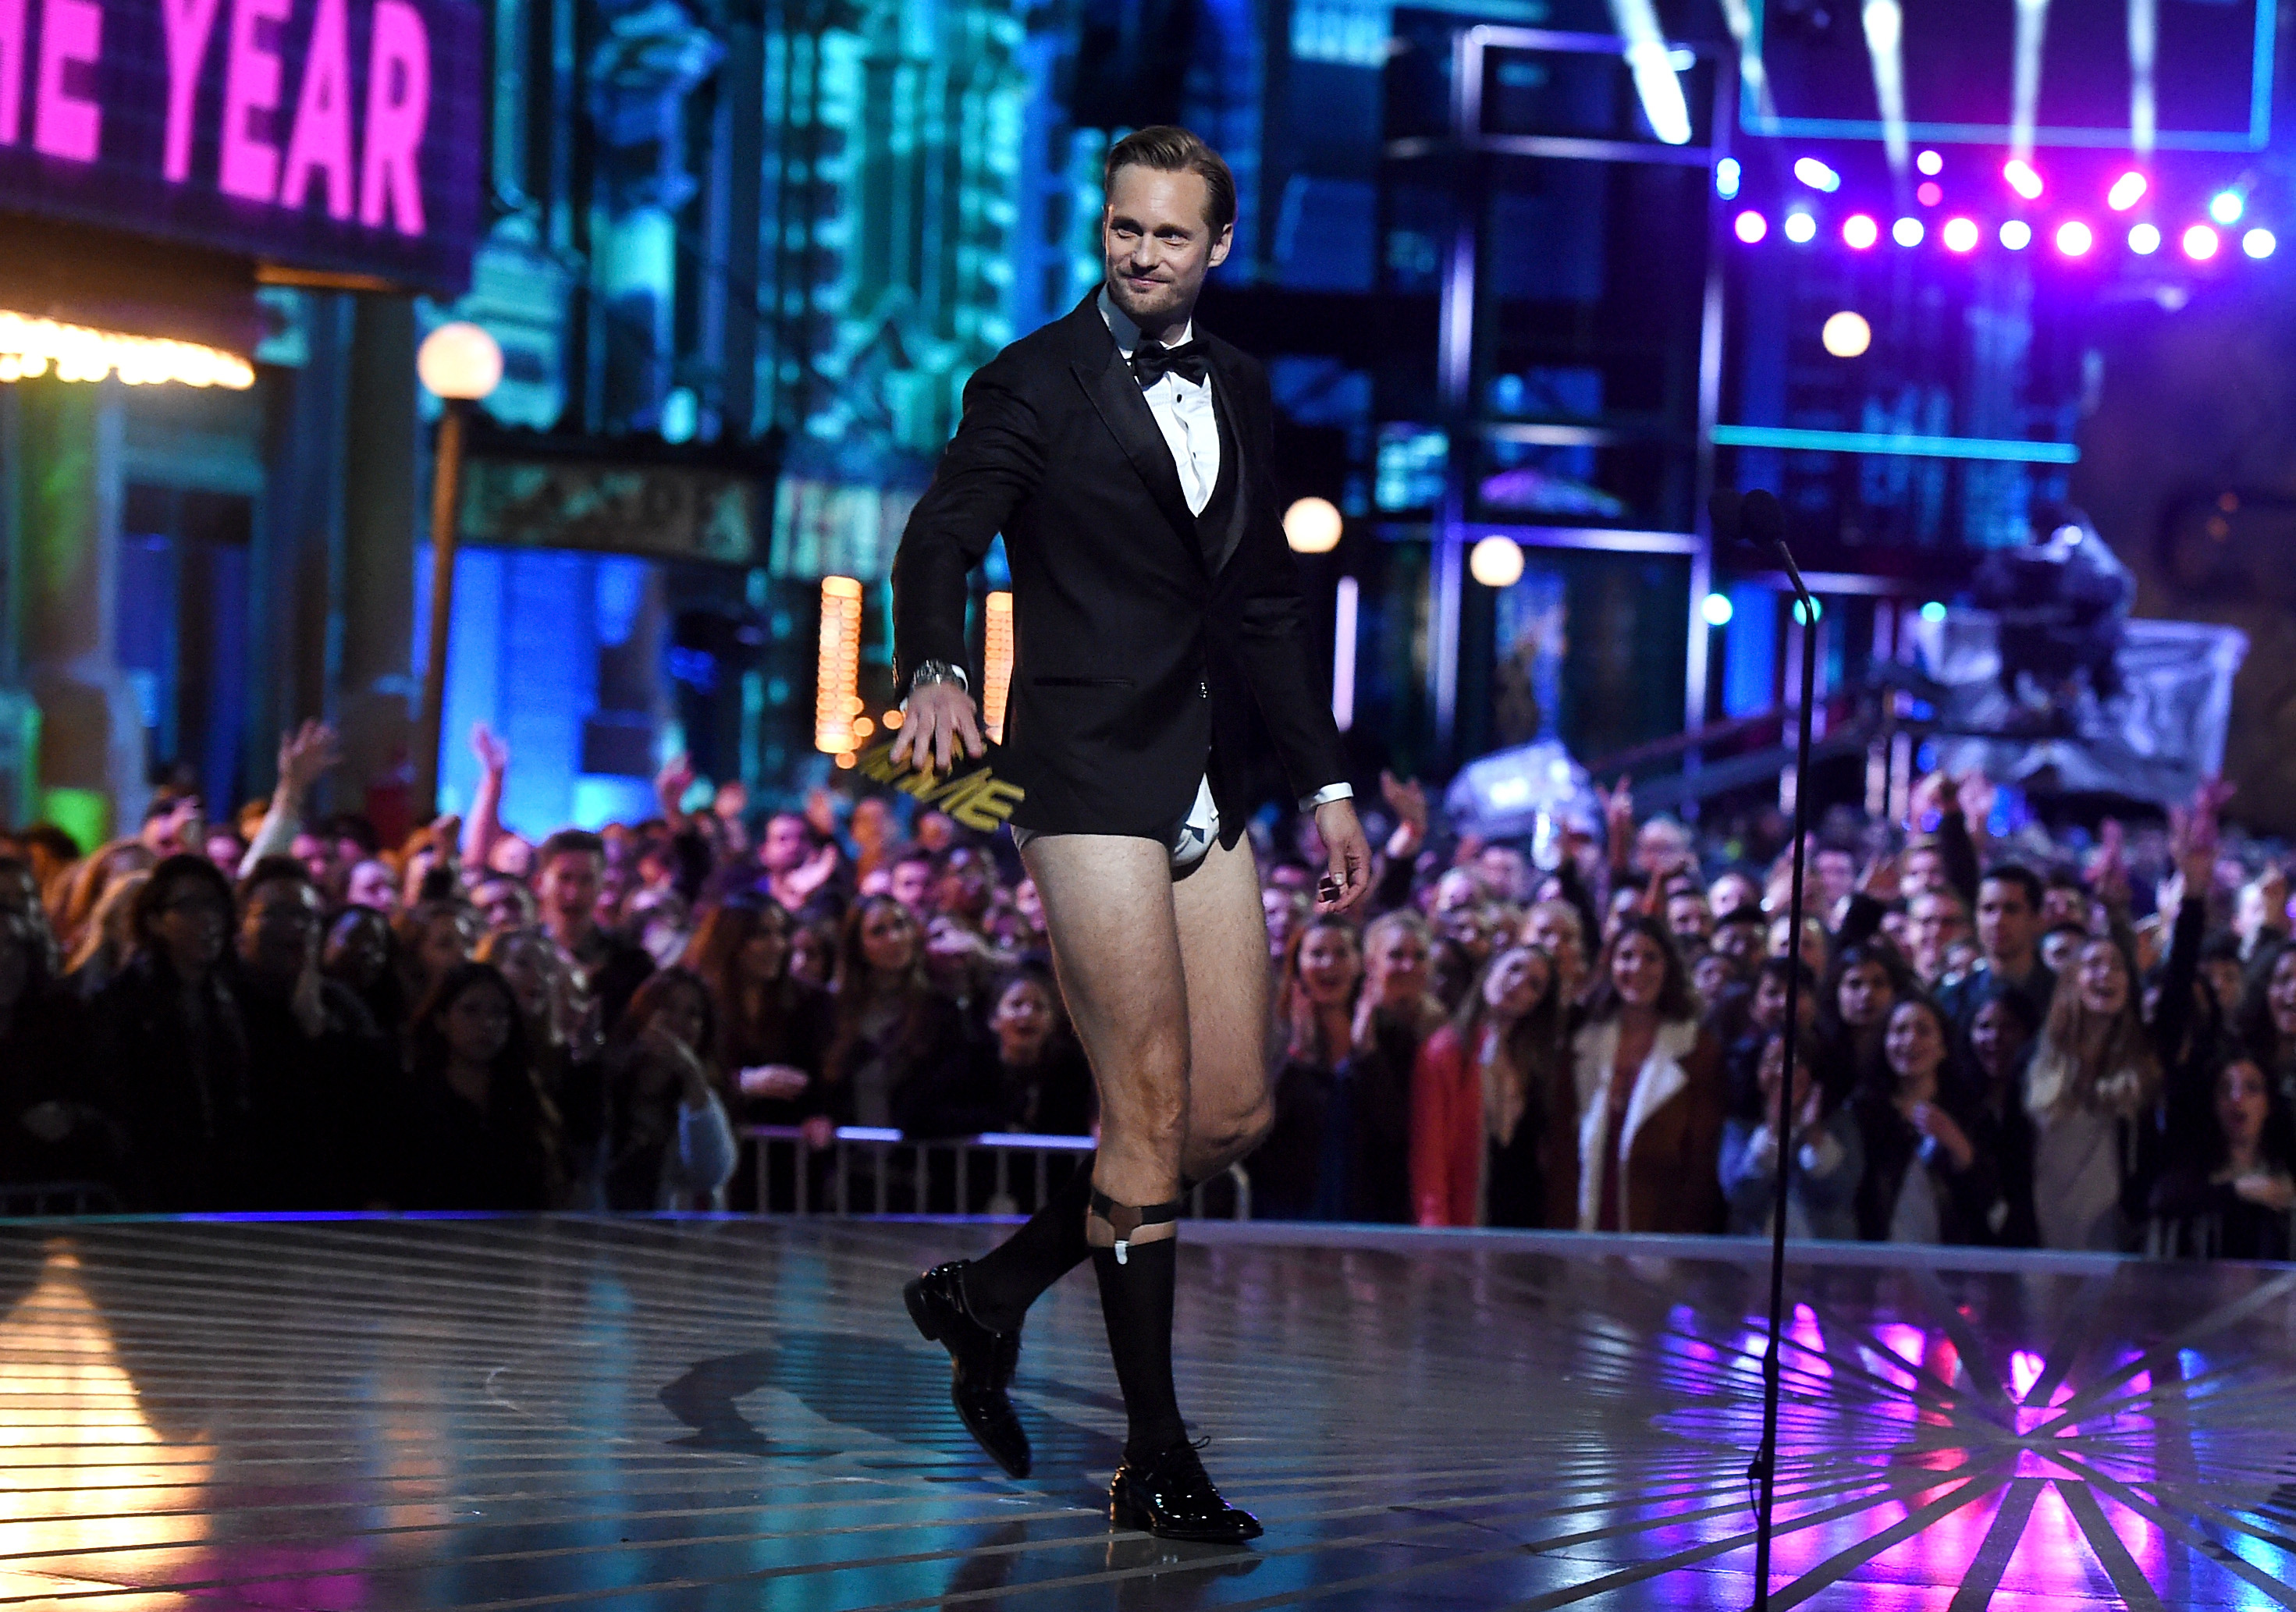 onstage during the 2016 MTV Movie Awards at Warner Bros. Studios on April 9, 2016 in Burbank, California. MTV Movie Awards airs April 10, 2016 at 8pm ET/PT.